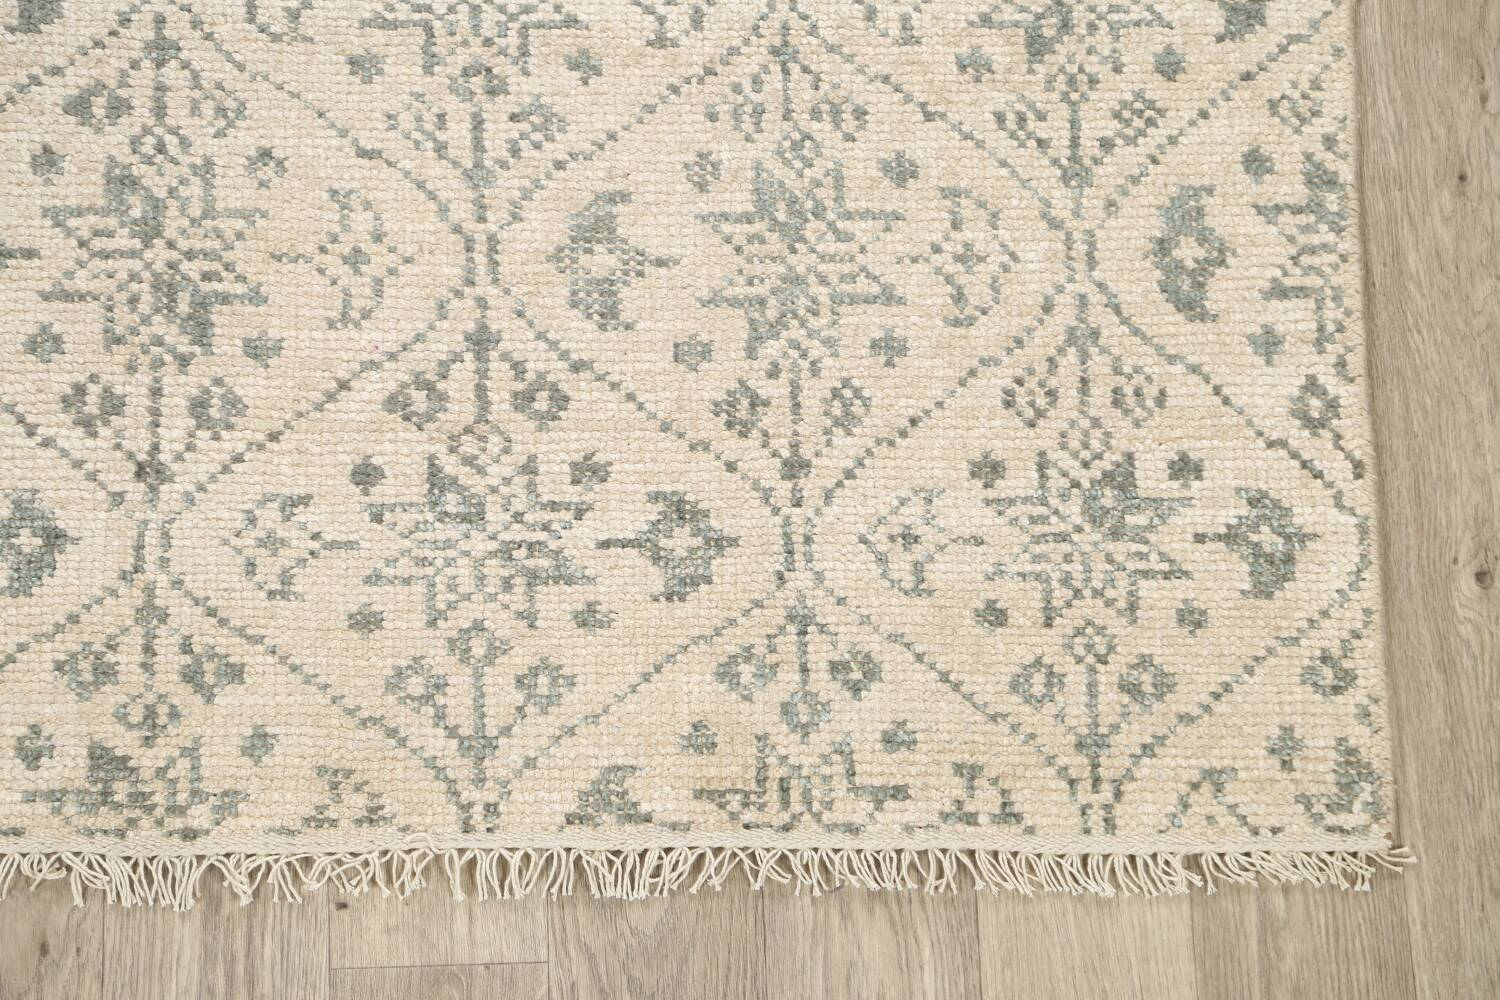 All-Over Modern Oriental Area Rug 6x8 image 5